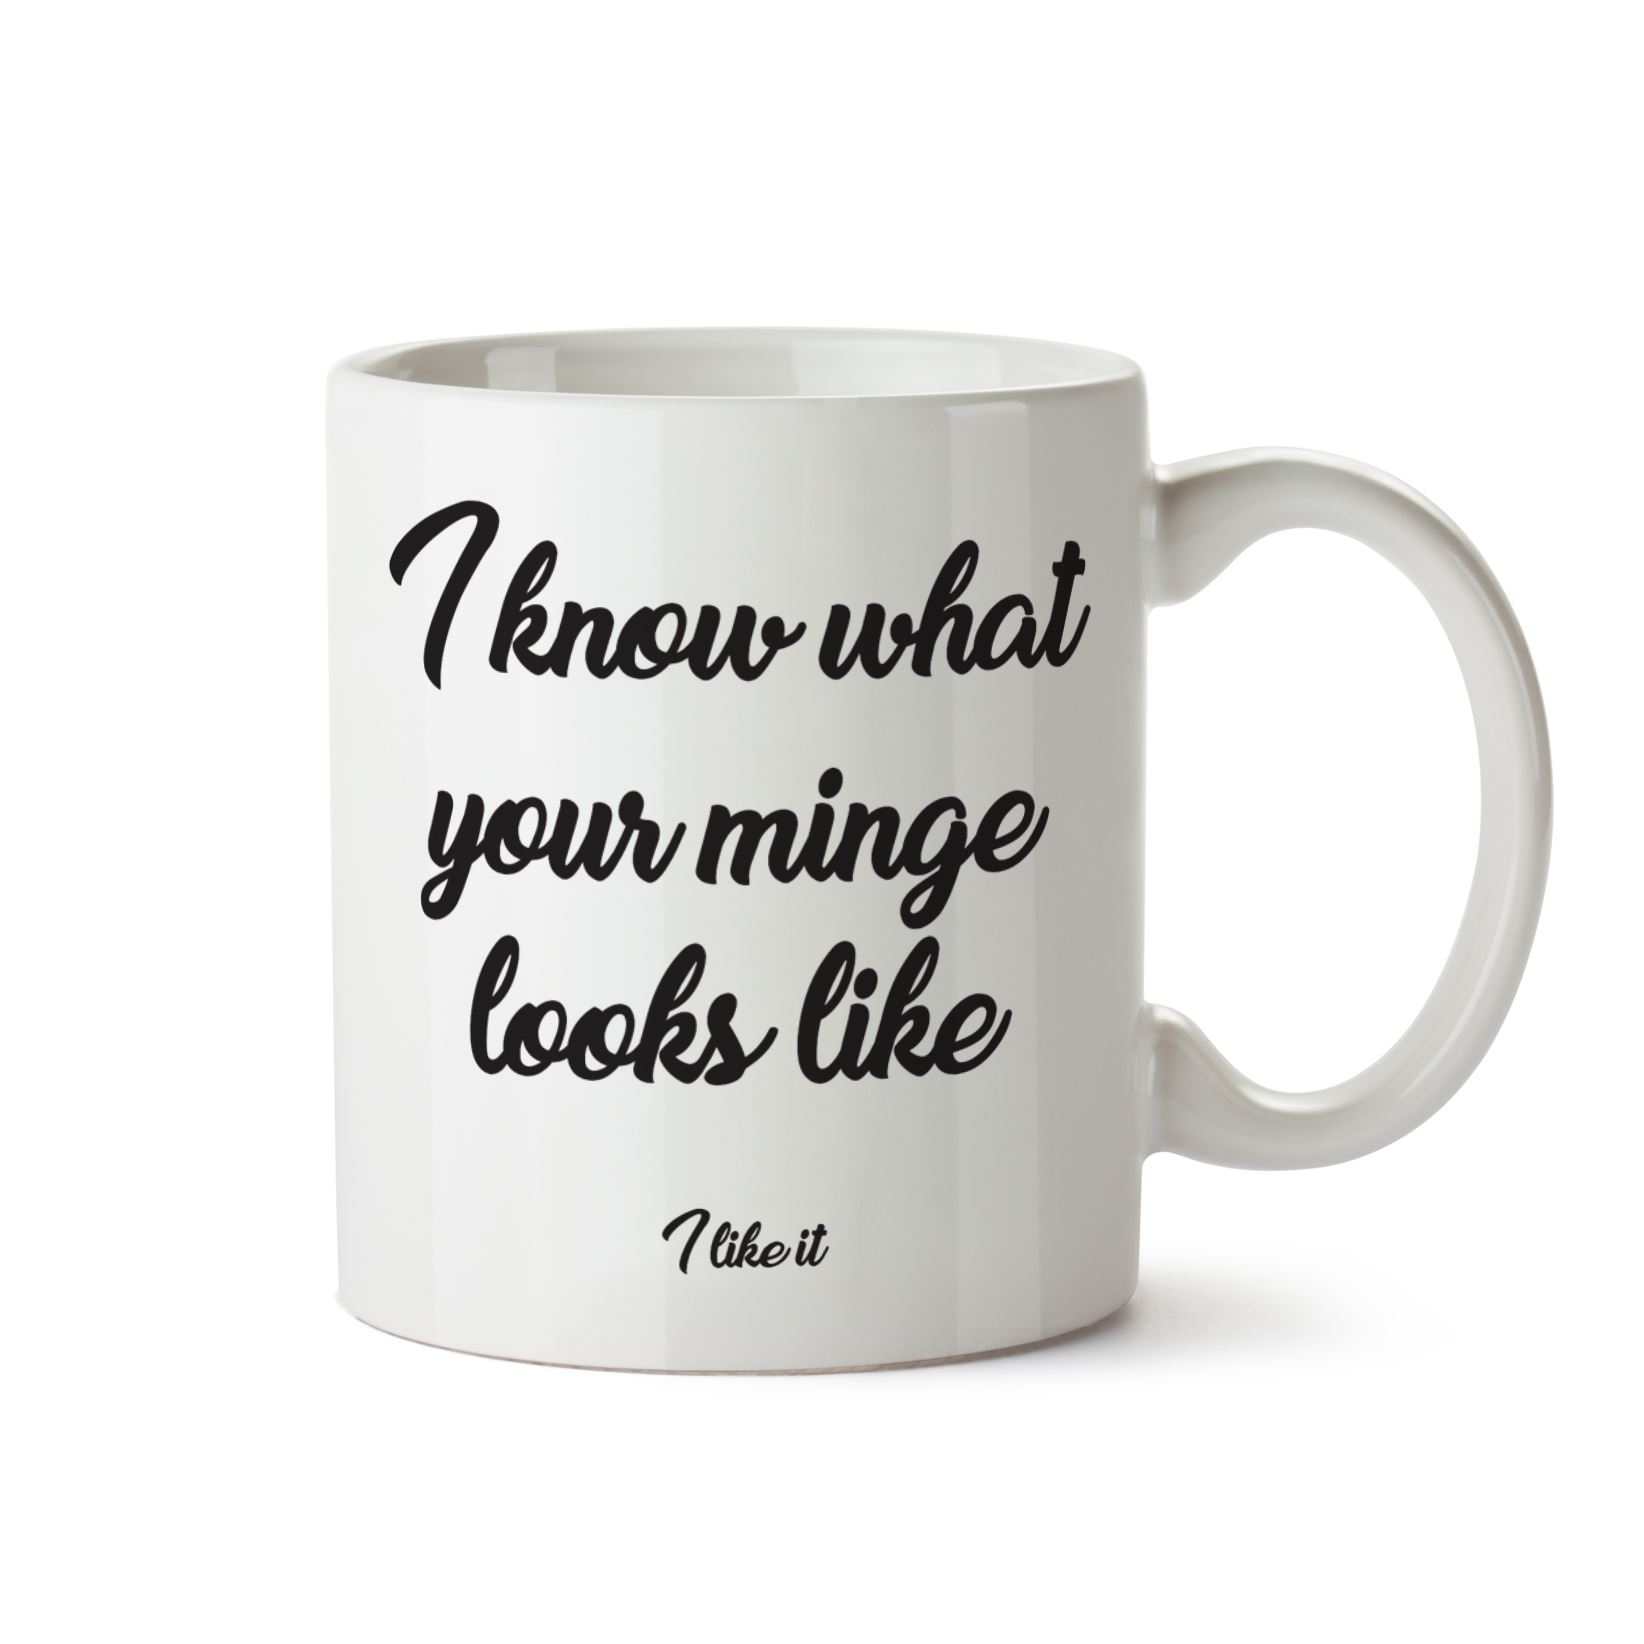 Novelty-Mugs-Funny-Rude-Valentines-Coffee-Cup-Gift-Idea-for-Girlfriend-Boyfriend